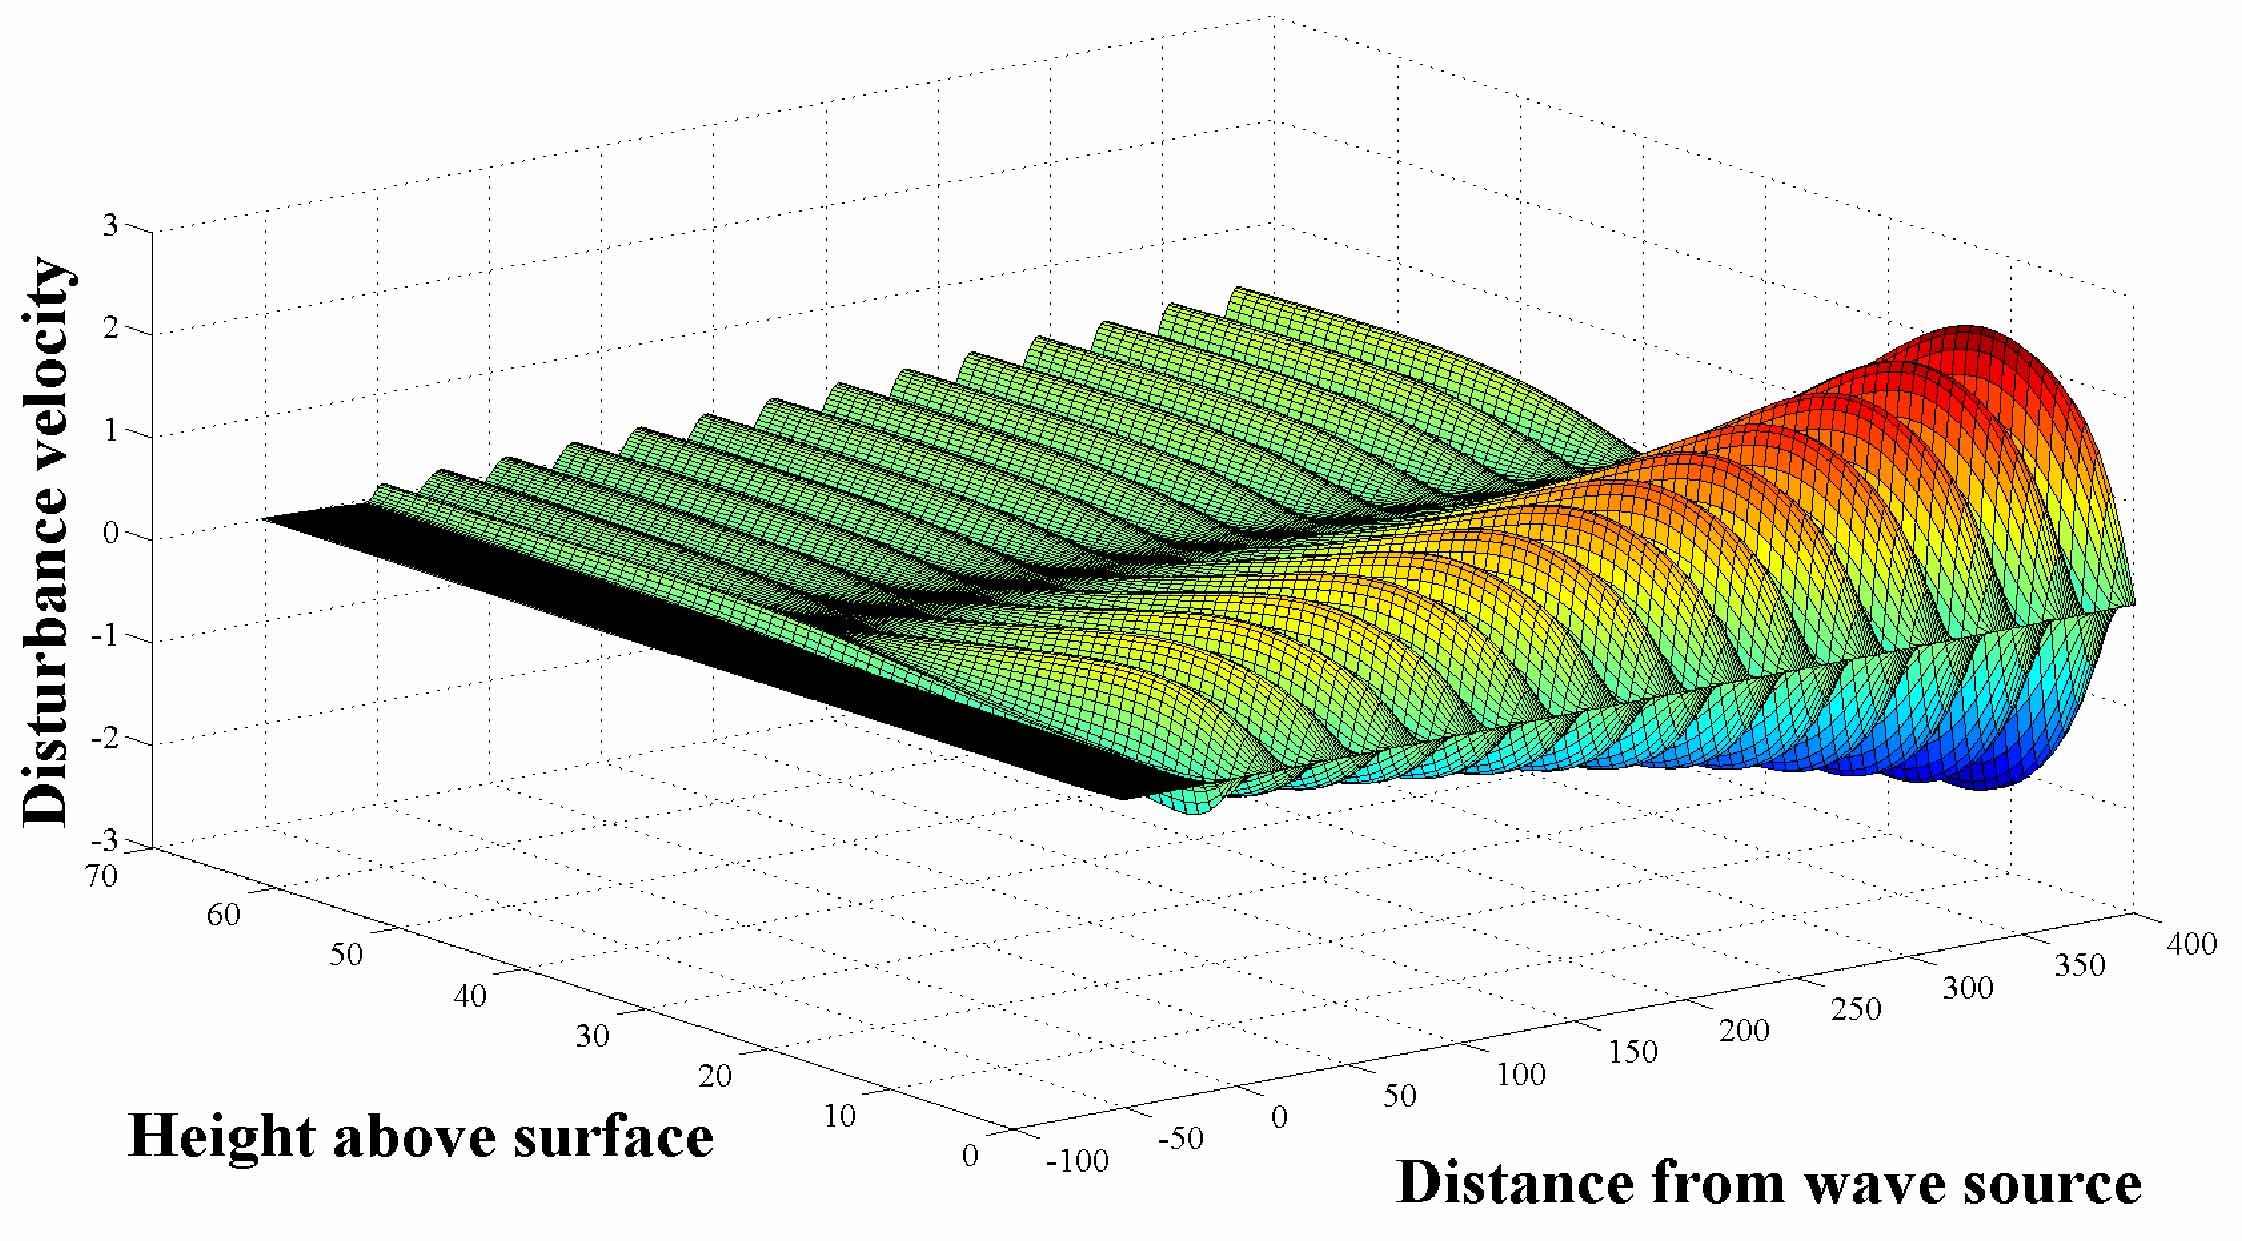 Understanding  how small disturbances (such as Tollmien-Schlichting waves) grow in the boundary layer will allow us to control them and increase the laminar region. This image shows how small disturbances can grow within a flow.